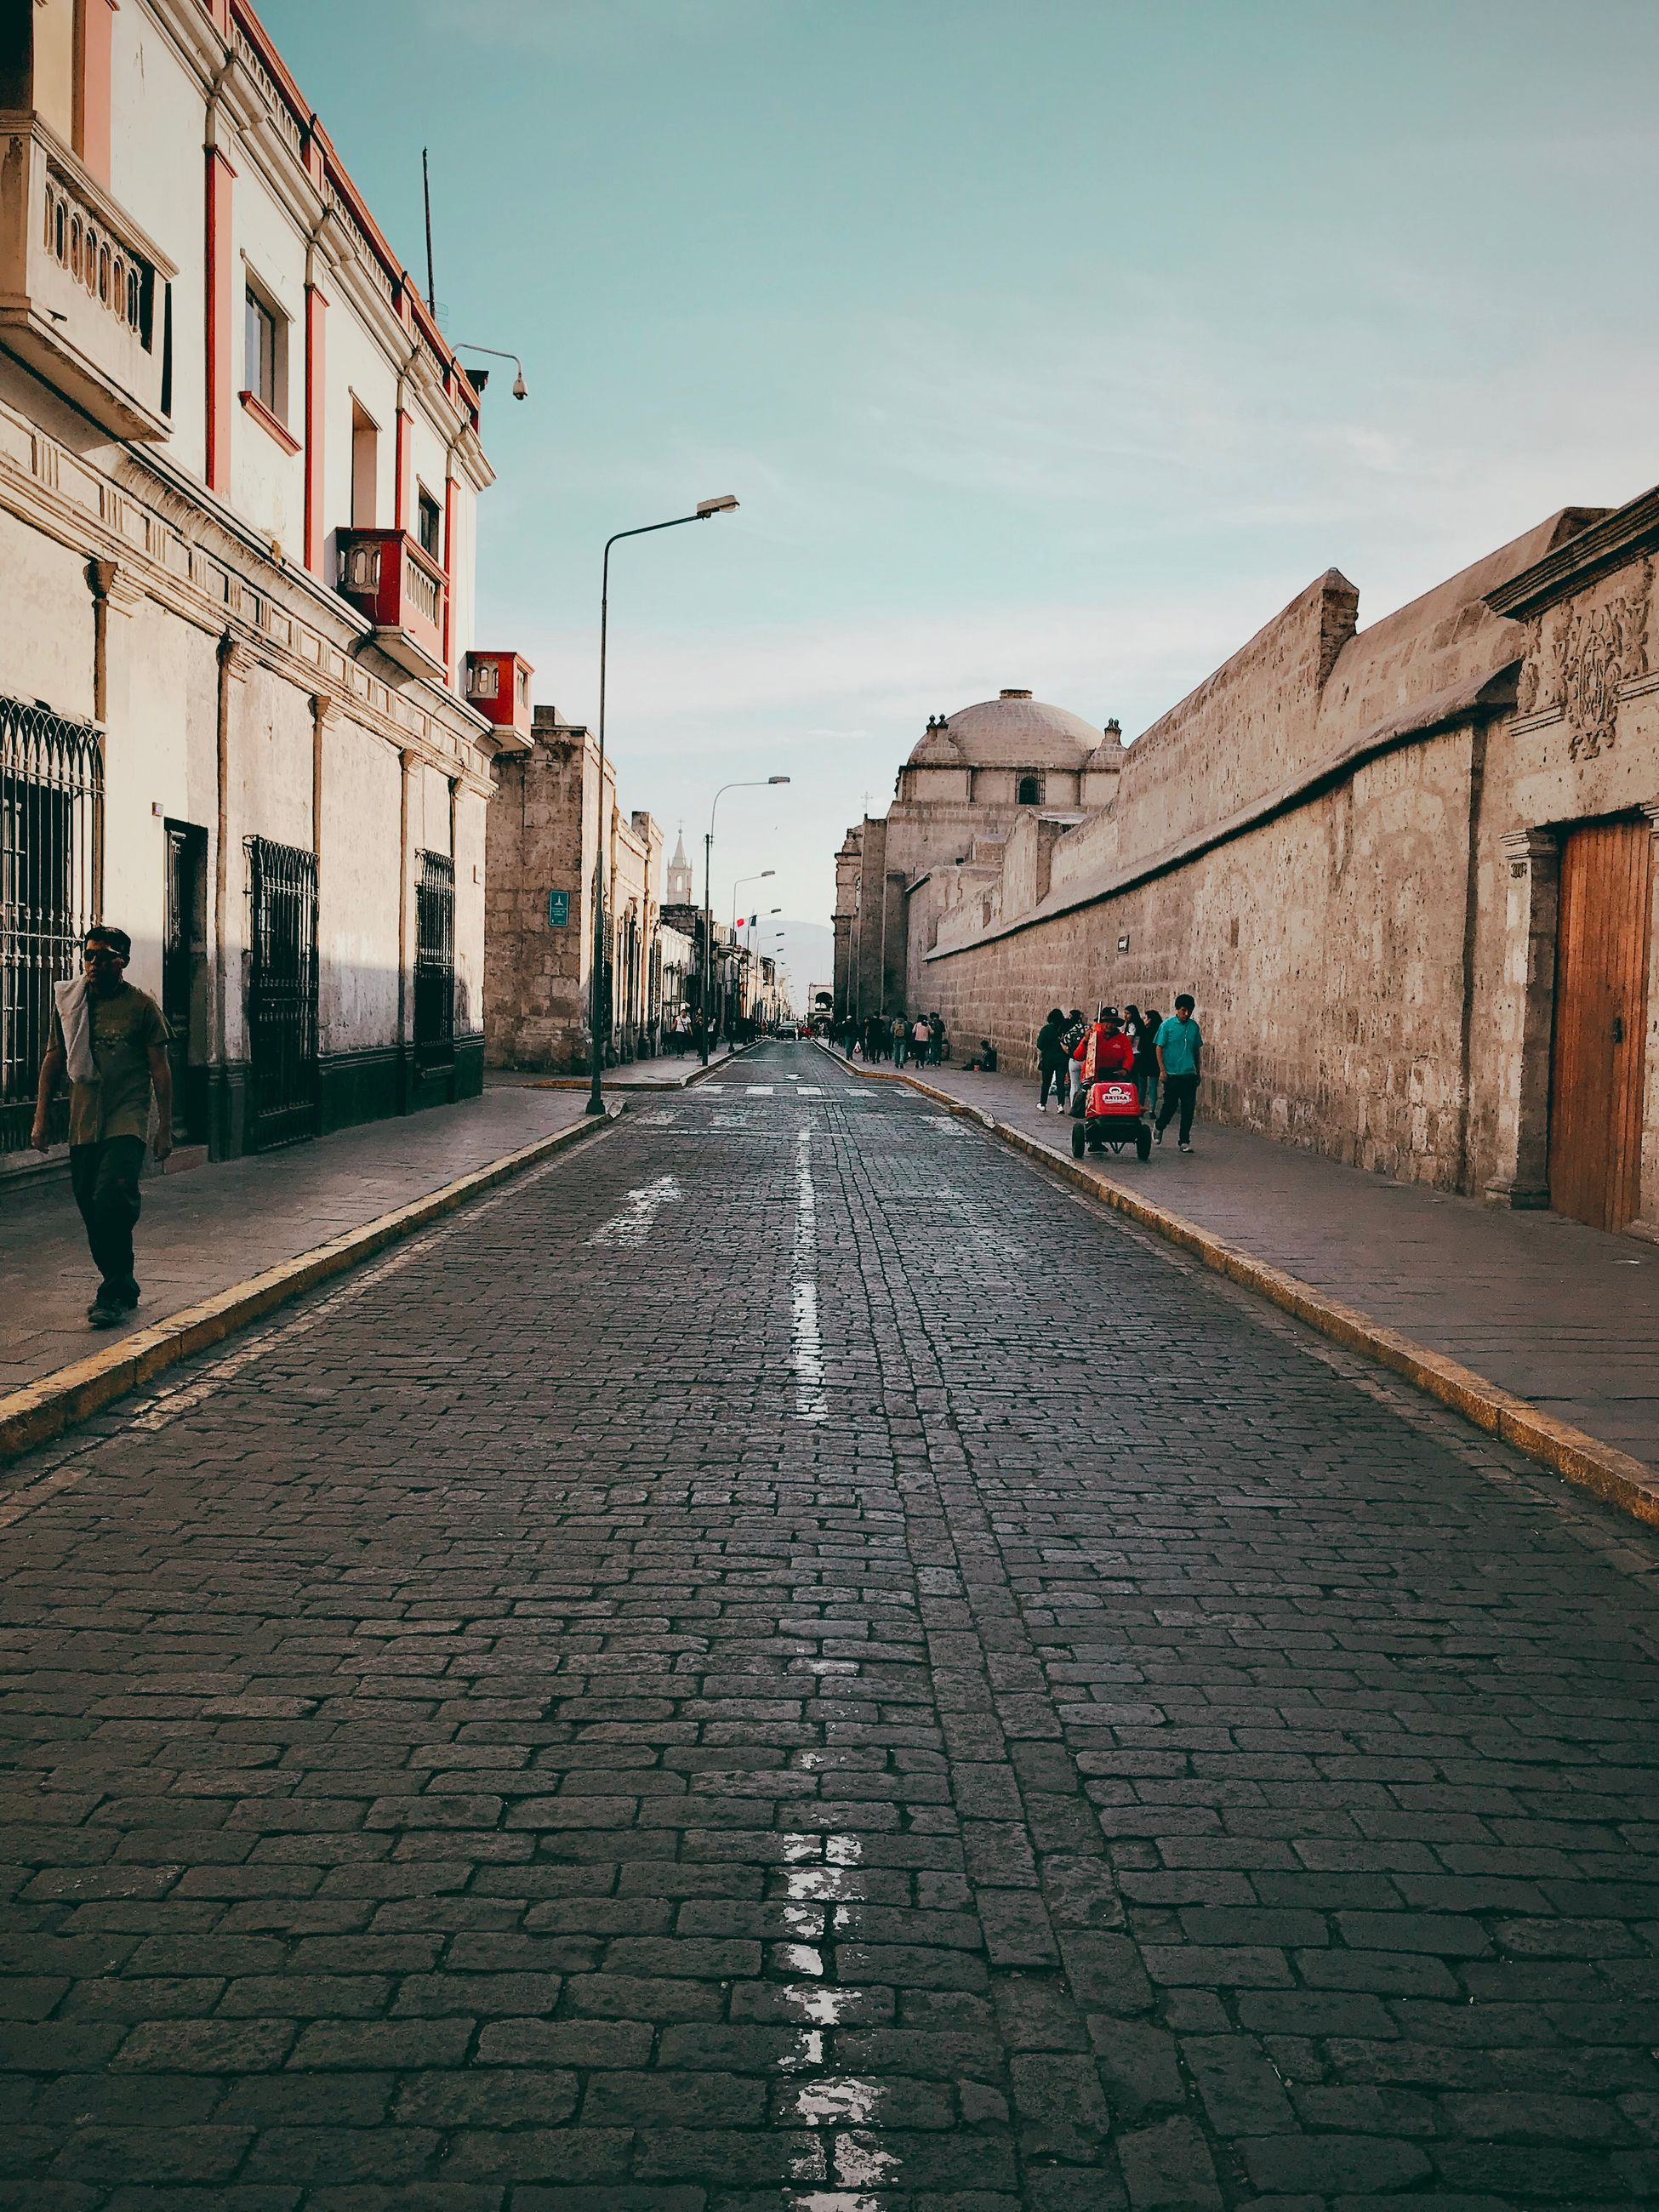 architecture, building exterior, built structure, the way forward, street, city, direction, real people, group of people, sky, footpath, incidental people, men, lifestyles, cobblestone, day, women, nature, sidewalk, diminishing perspective, outdoors, paving stone